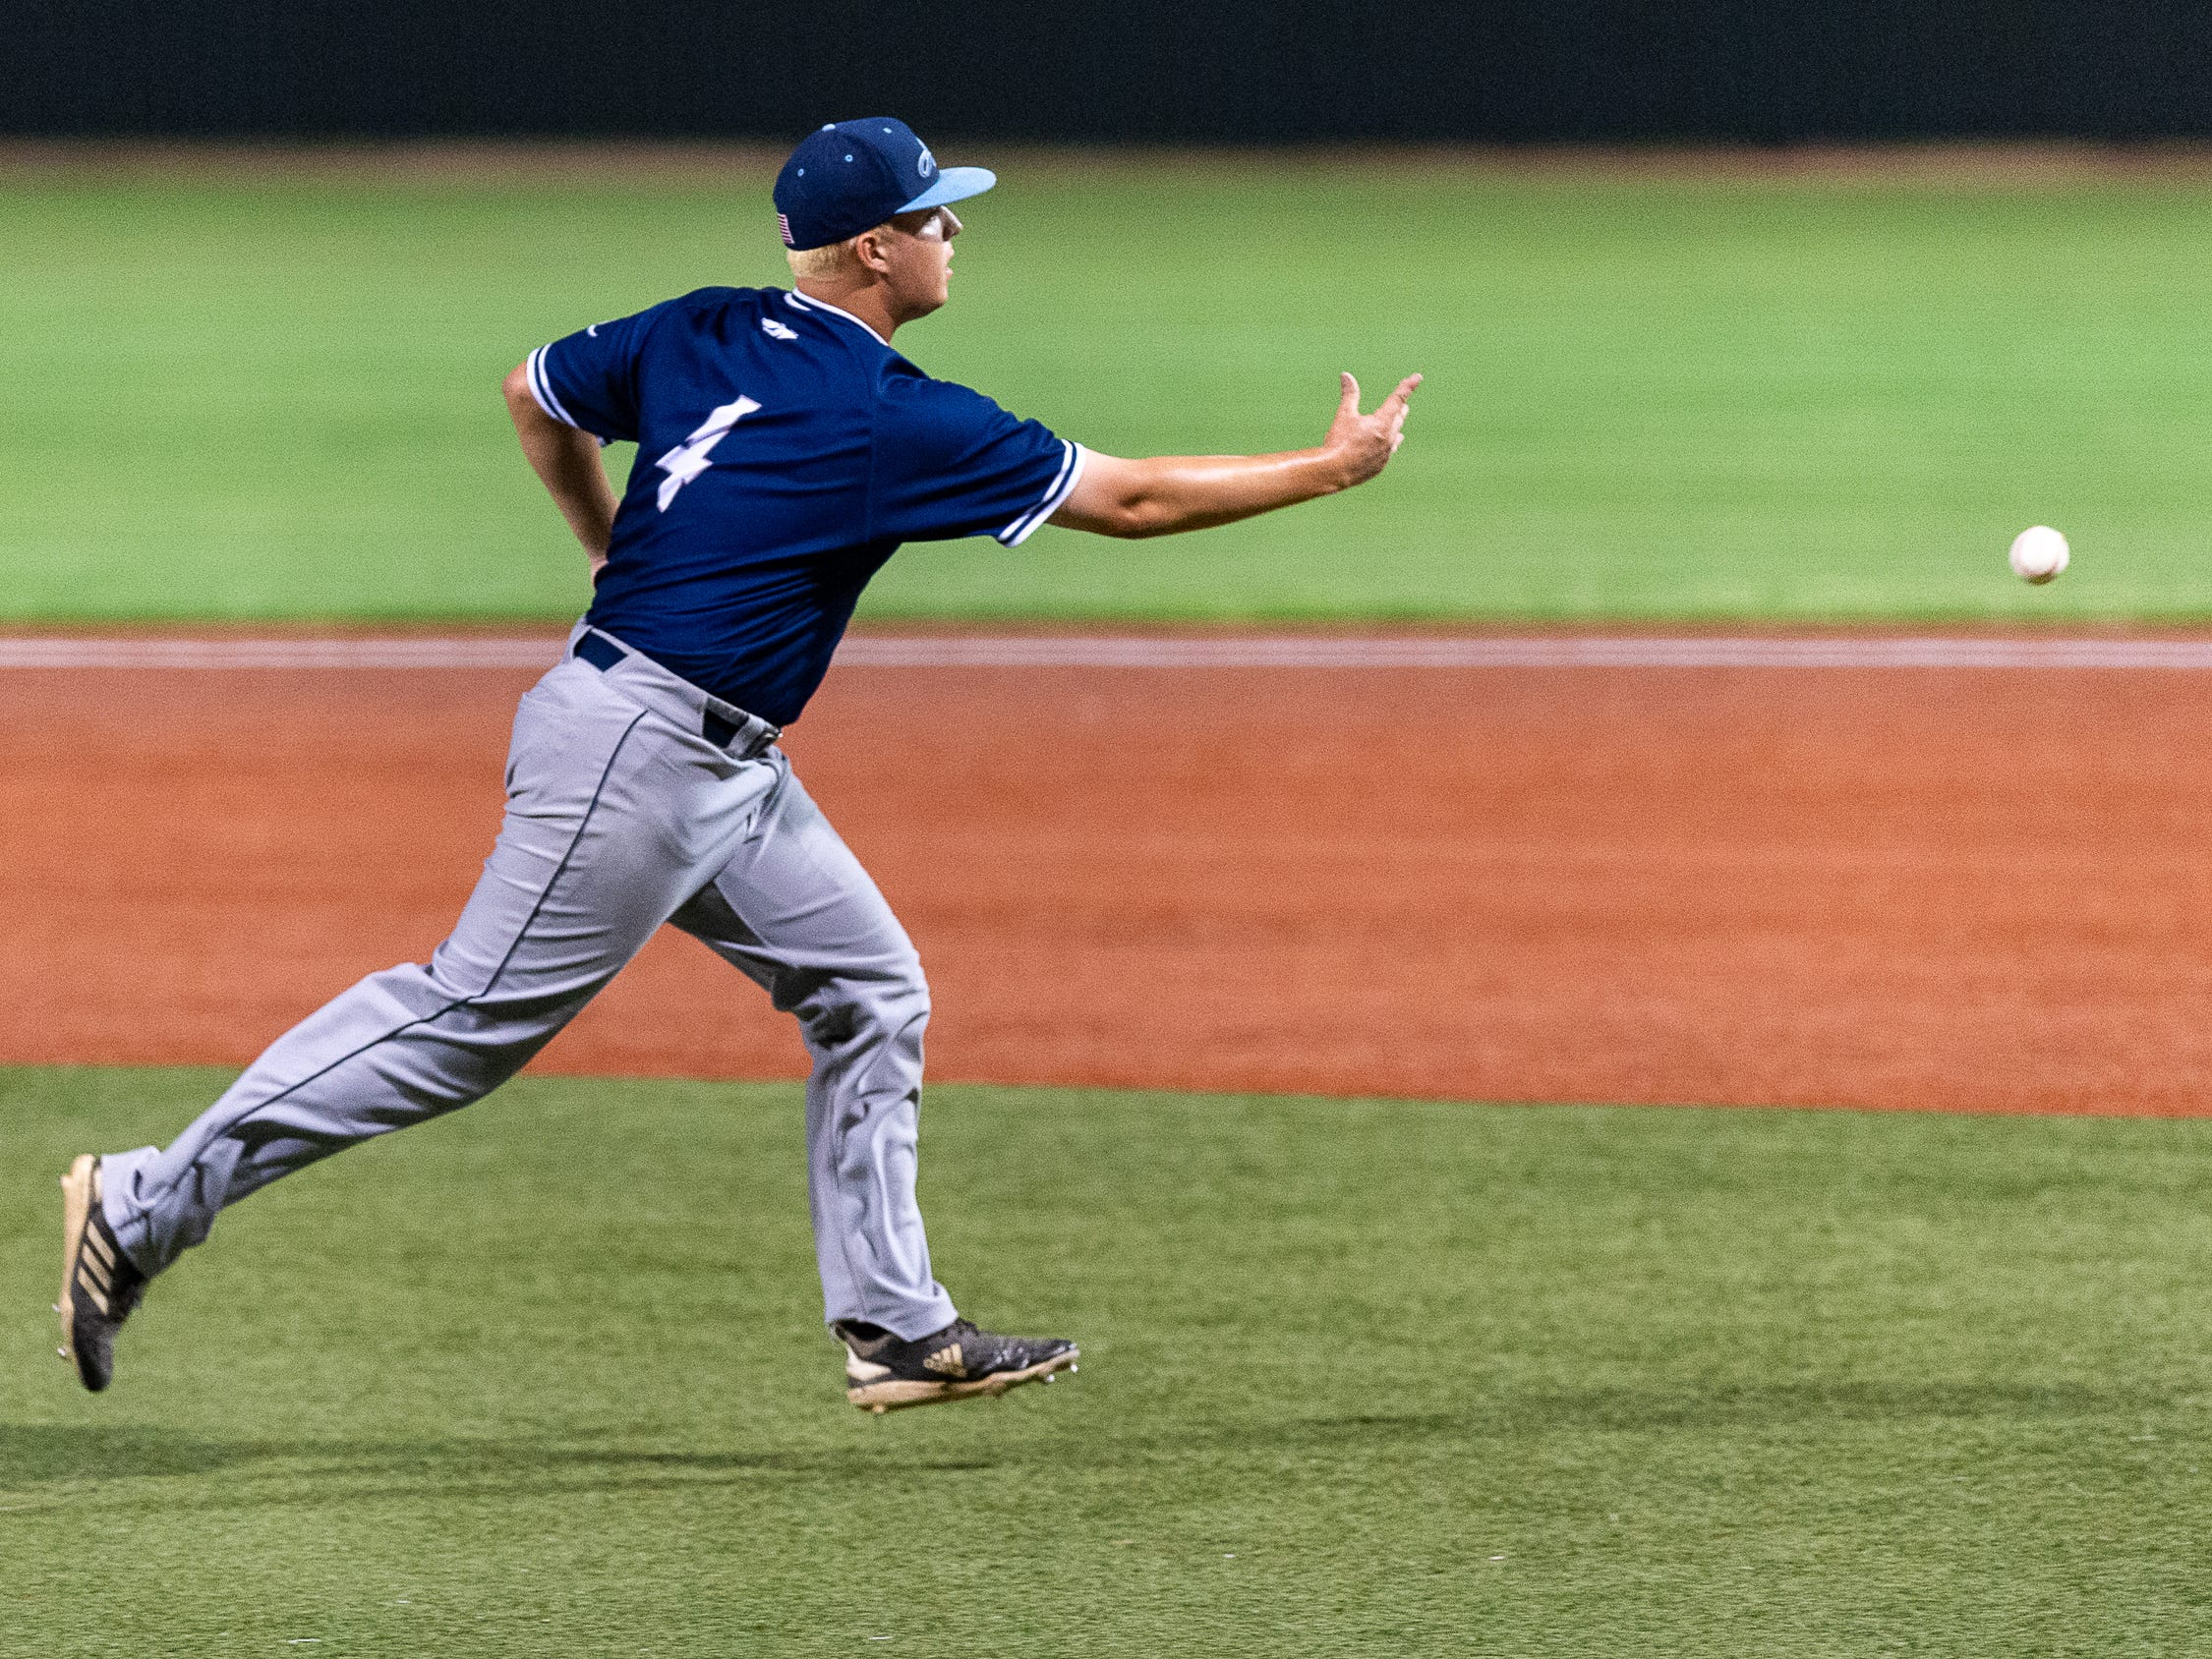 Pitcher Sean Michael Brady gets the out at first as Ascension Episcopal takes on St. Thomas Aquinas in the semi final round at the LHSAA State Championship. Wednesday, May 8, 2019.